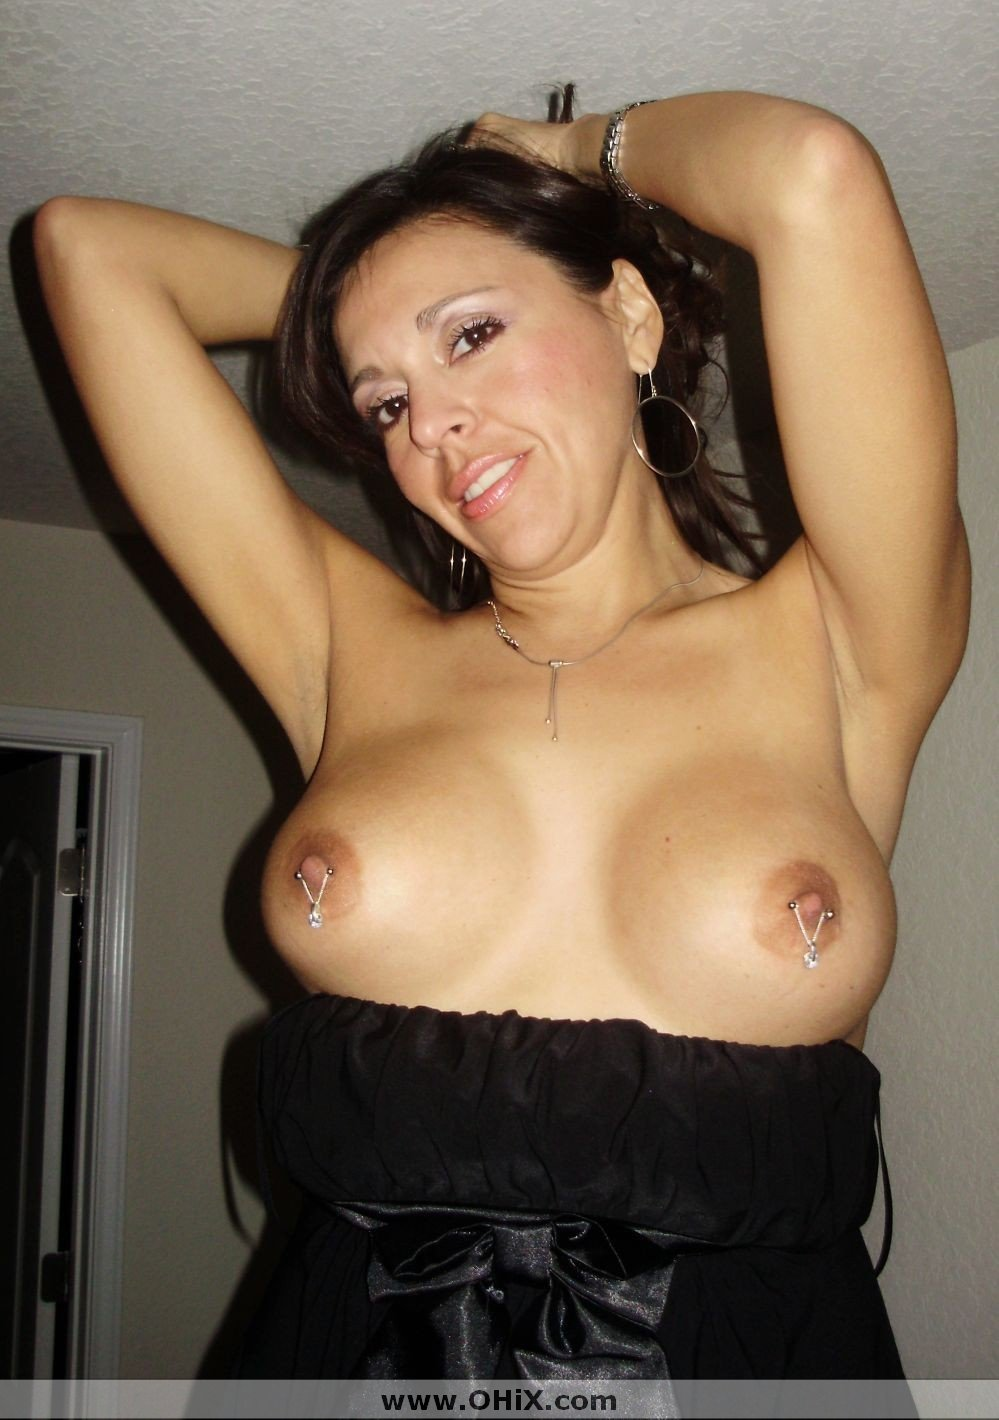 http://static.ohix.com/photos/Mature-brune-bronzee-3/13.jpg